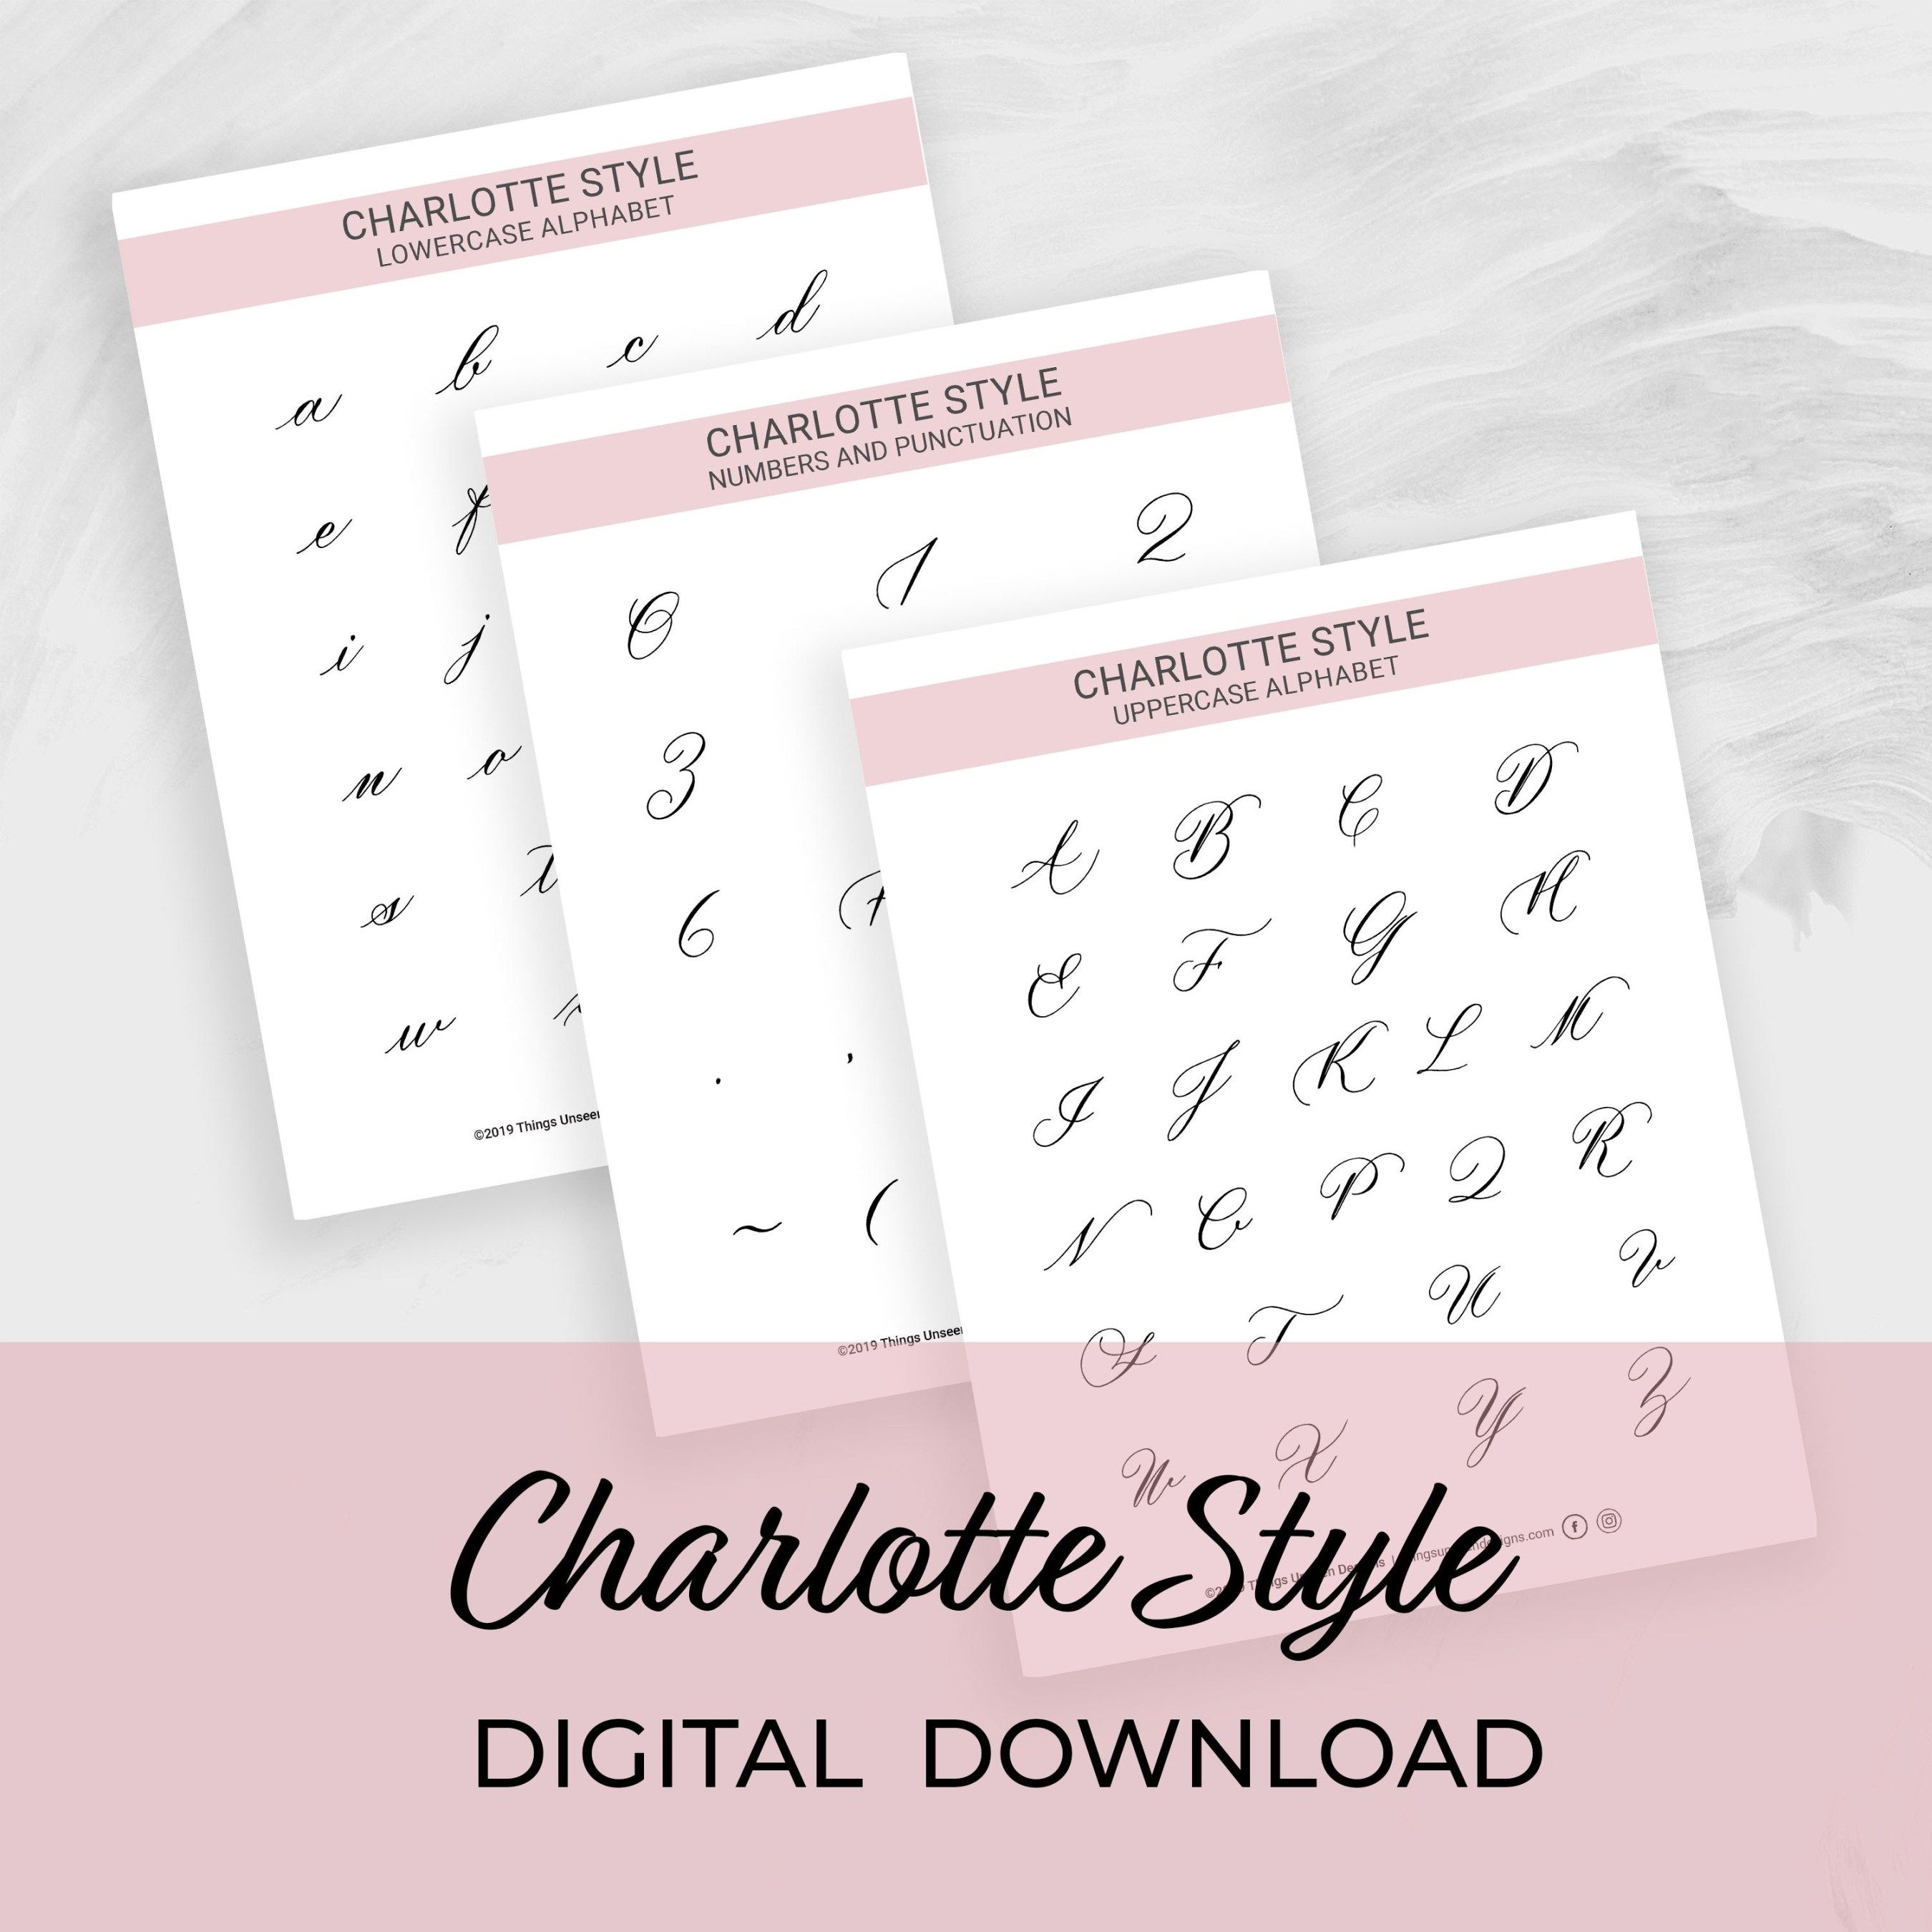 Modern Calligraphy Worksheets Charlotte Style In Pointed Pen Small Brush Pen And Ipad Procreate Ver Calligraphy Worksheet Modern Calligraphy Marker Paper [ 2700 x 2700 Pixel ]